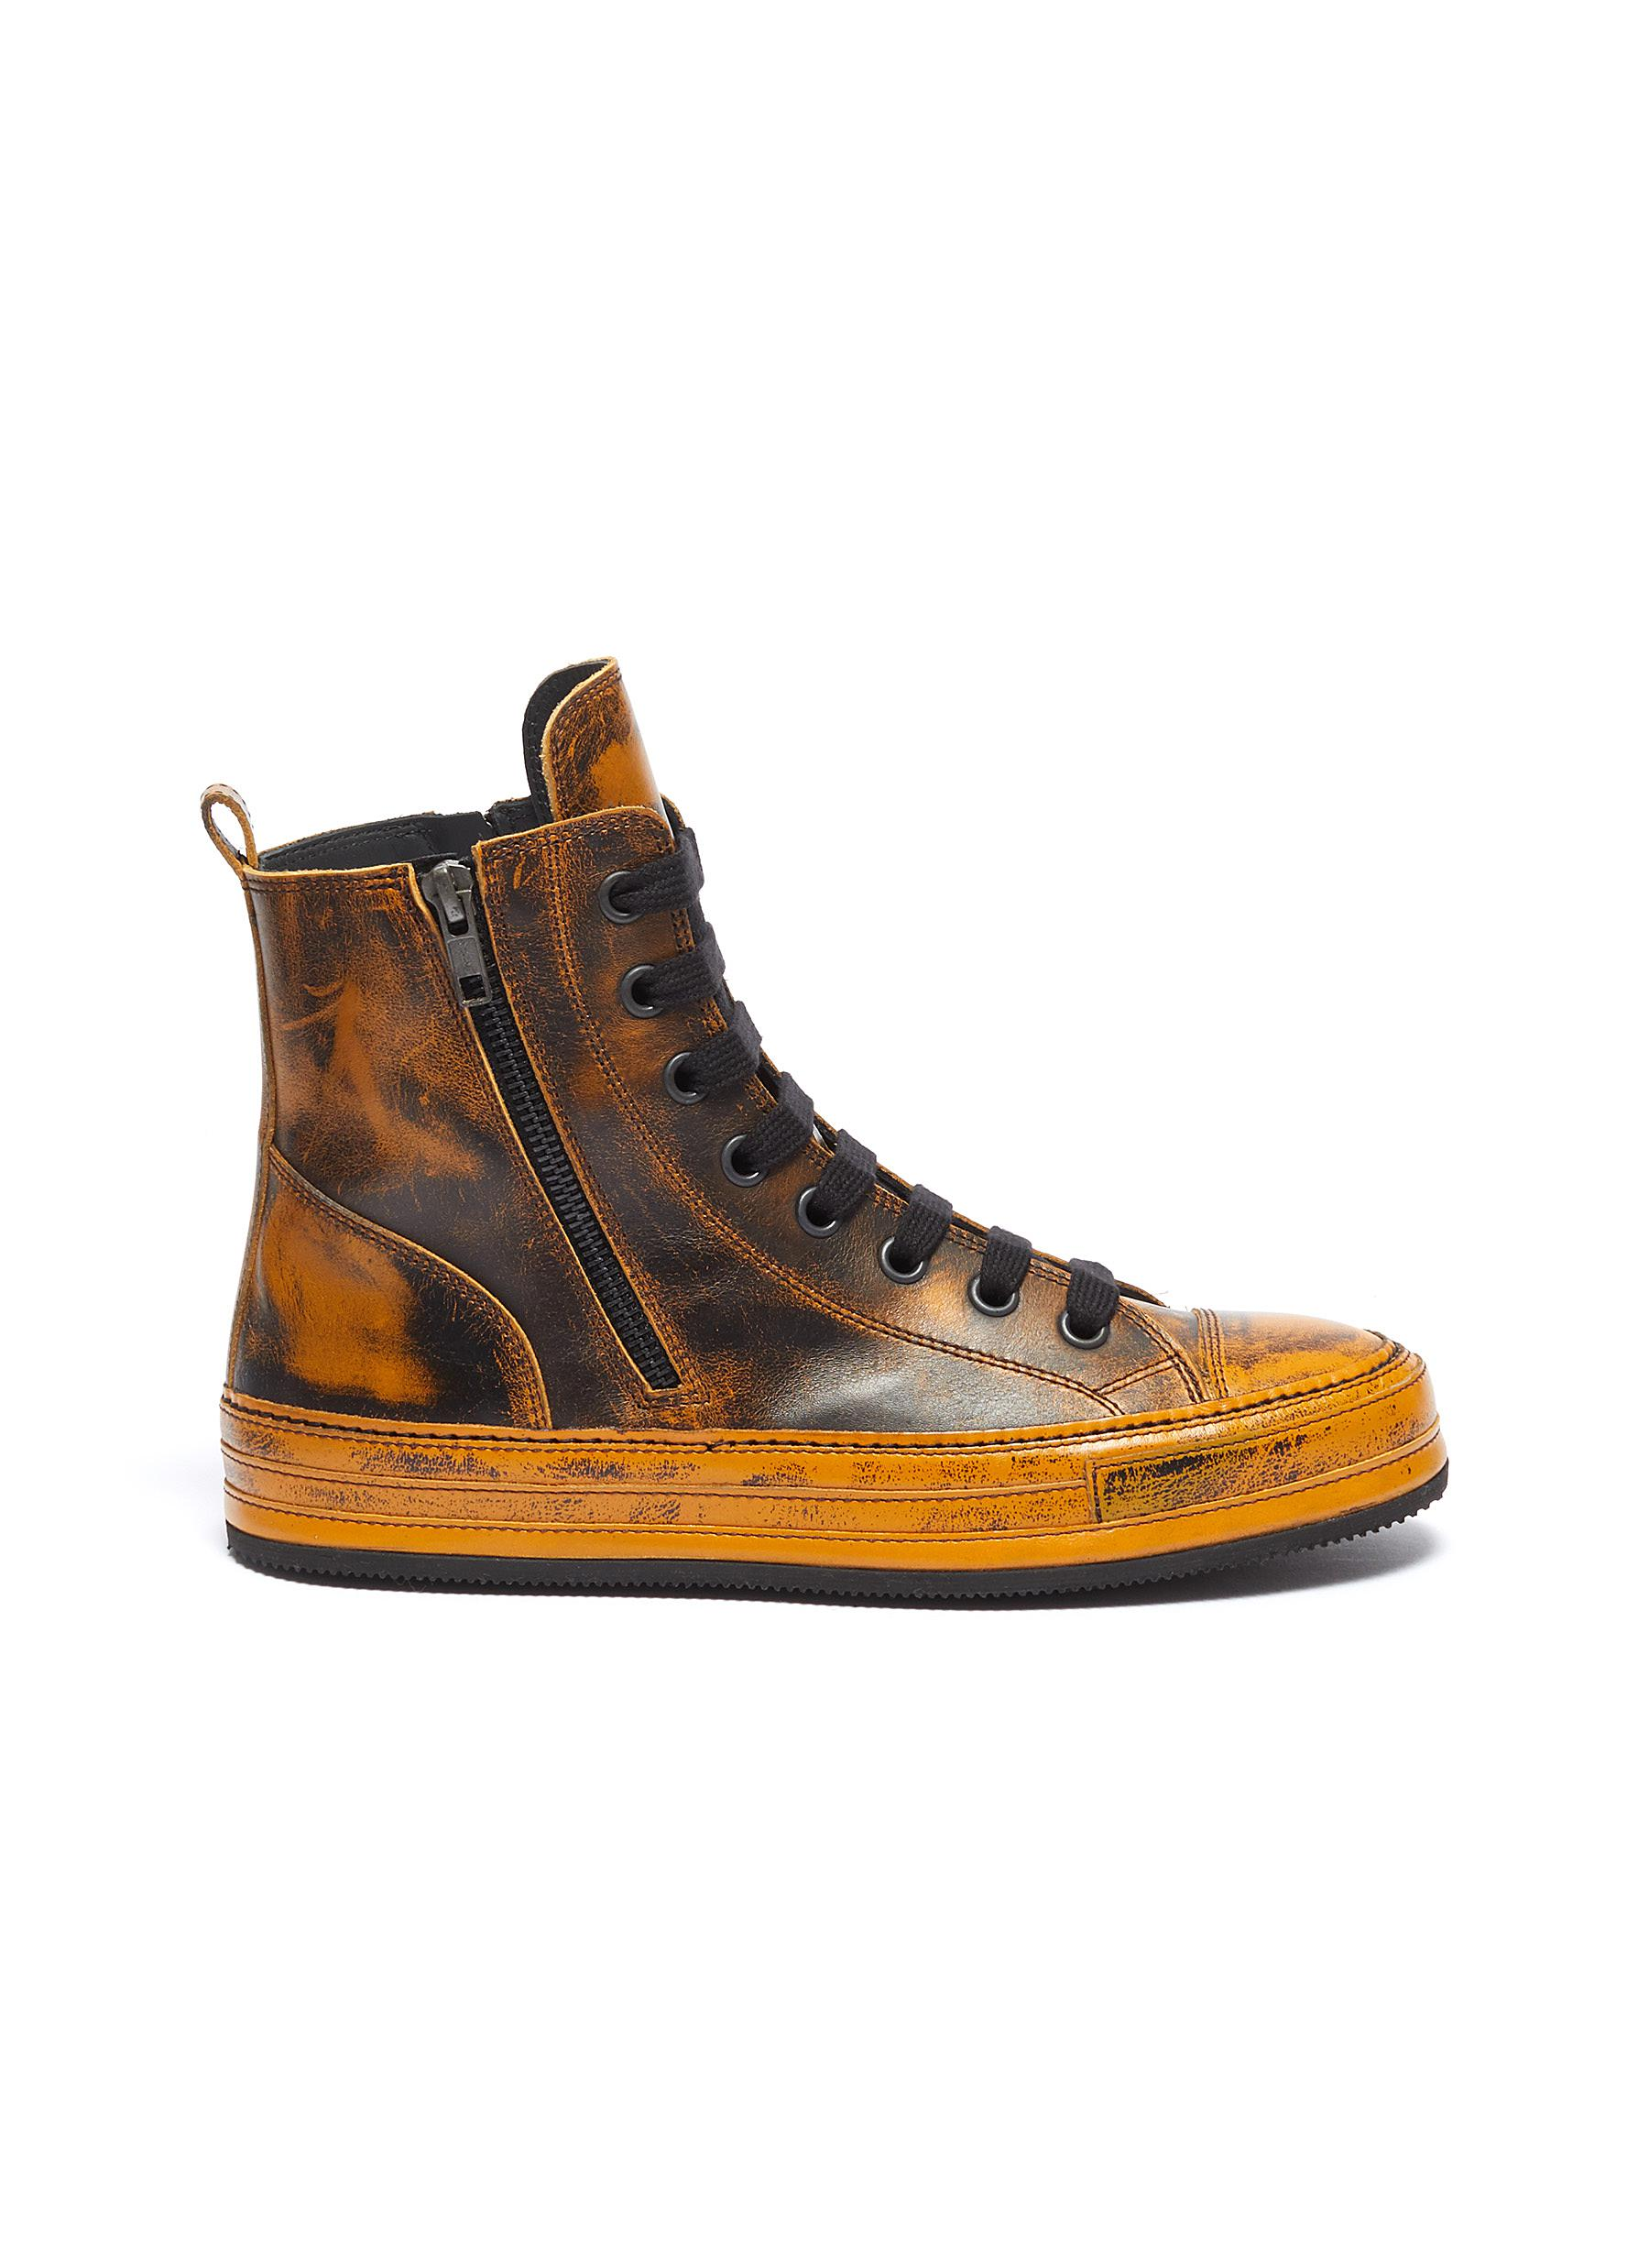 Distressed leather high top sneakers by Ann Demeulemeester